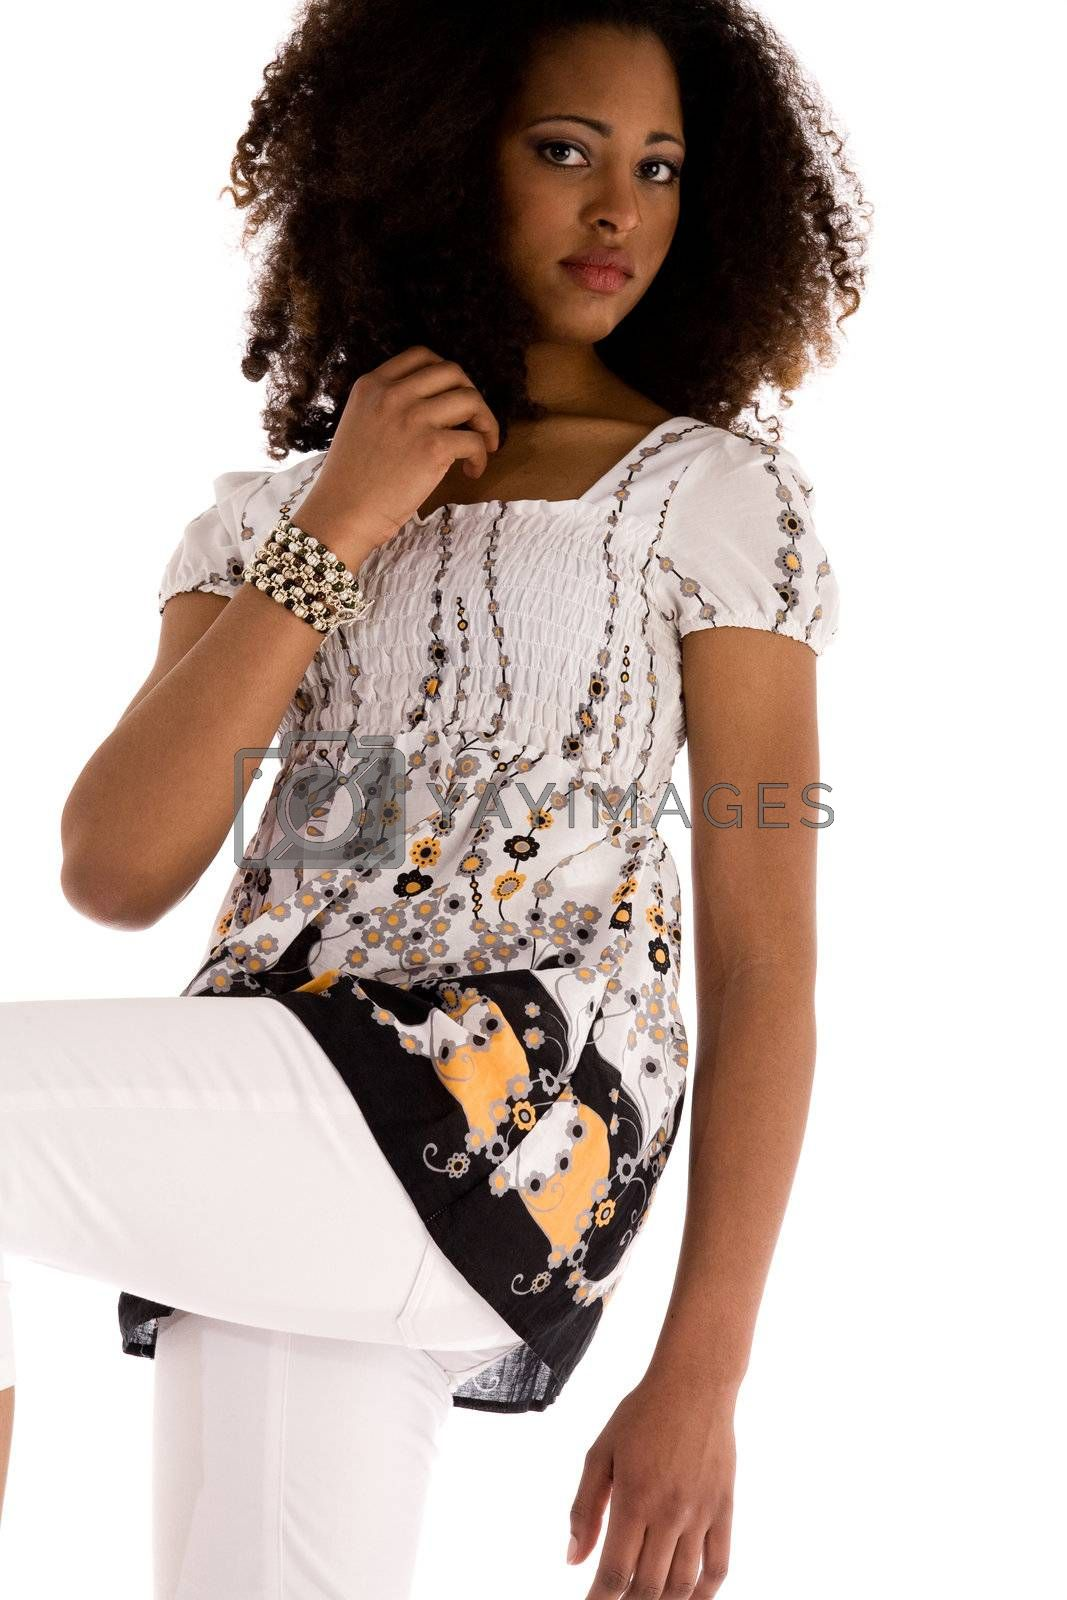 African girl in the studio with a fashion attitude